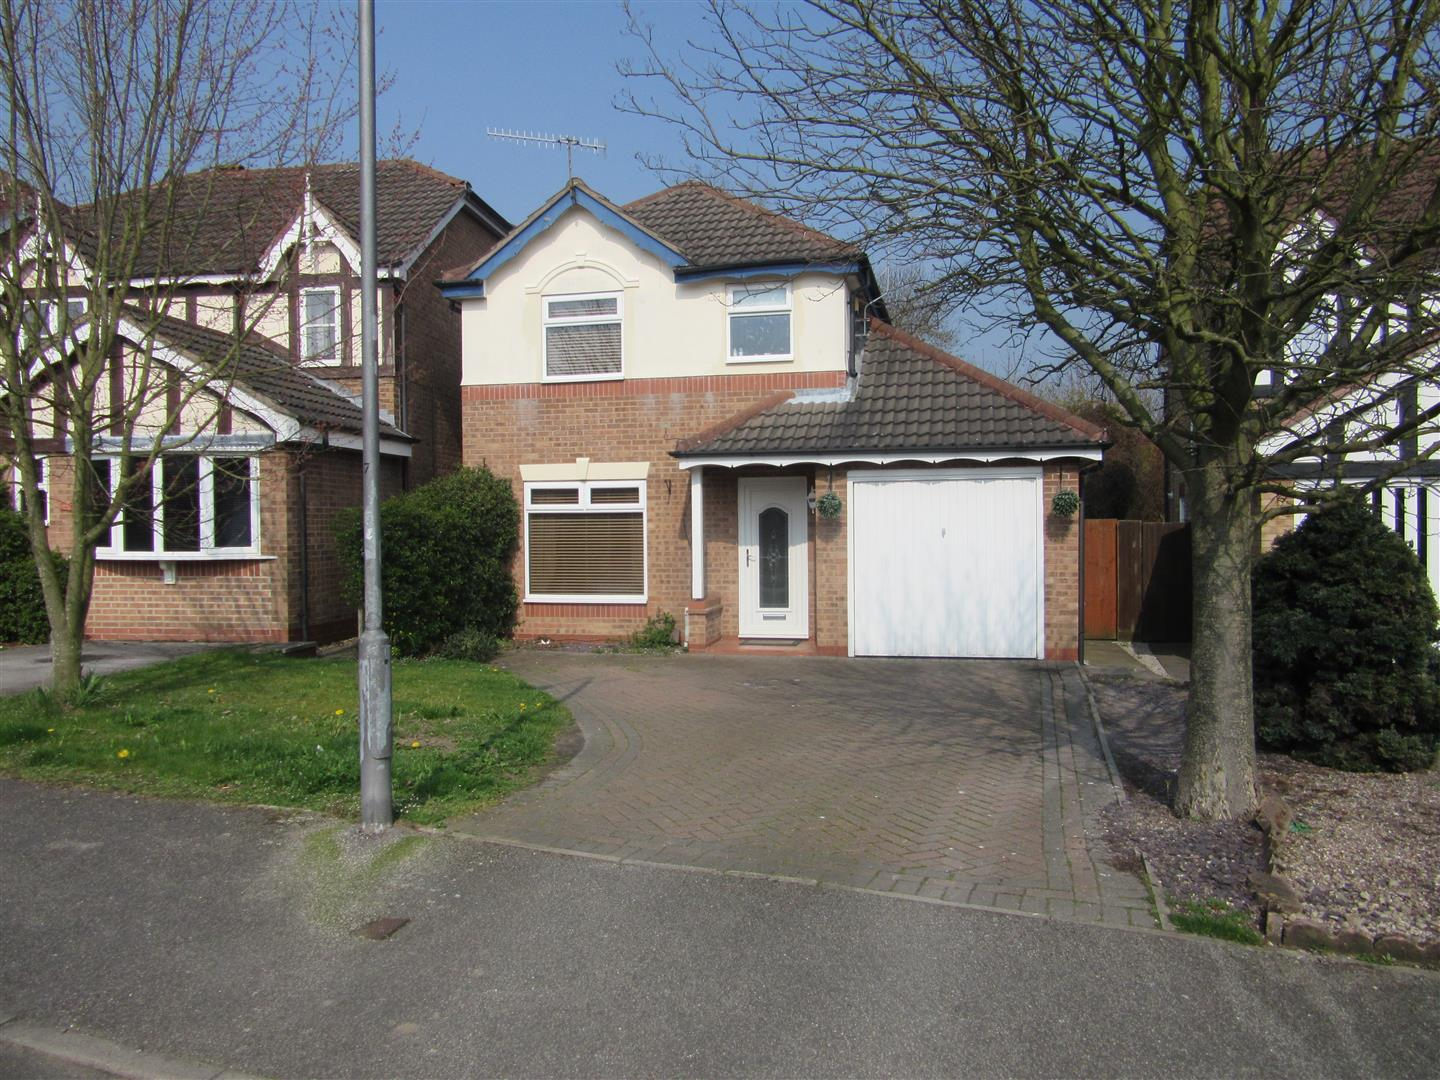 3 Bedrooms Detached House for sale in Jenny Burton, Hucknall, Nottingham